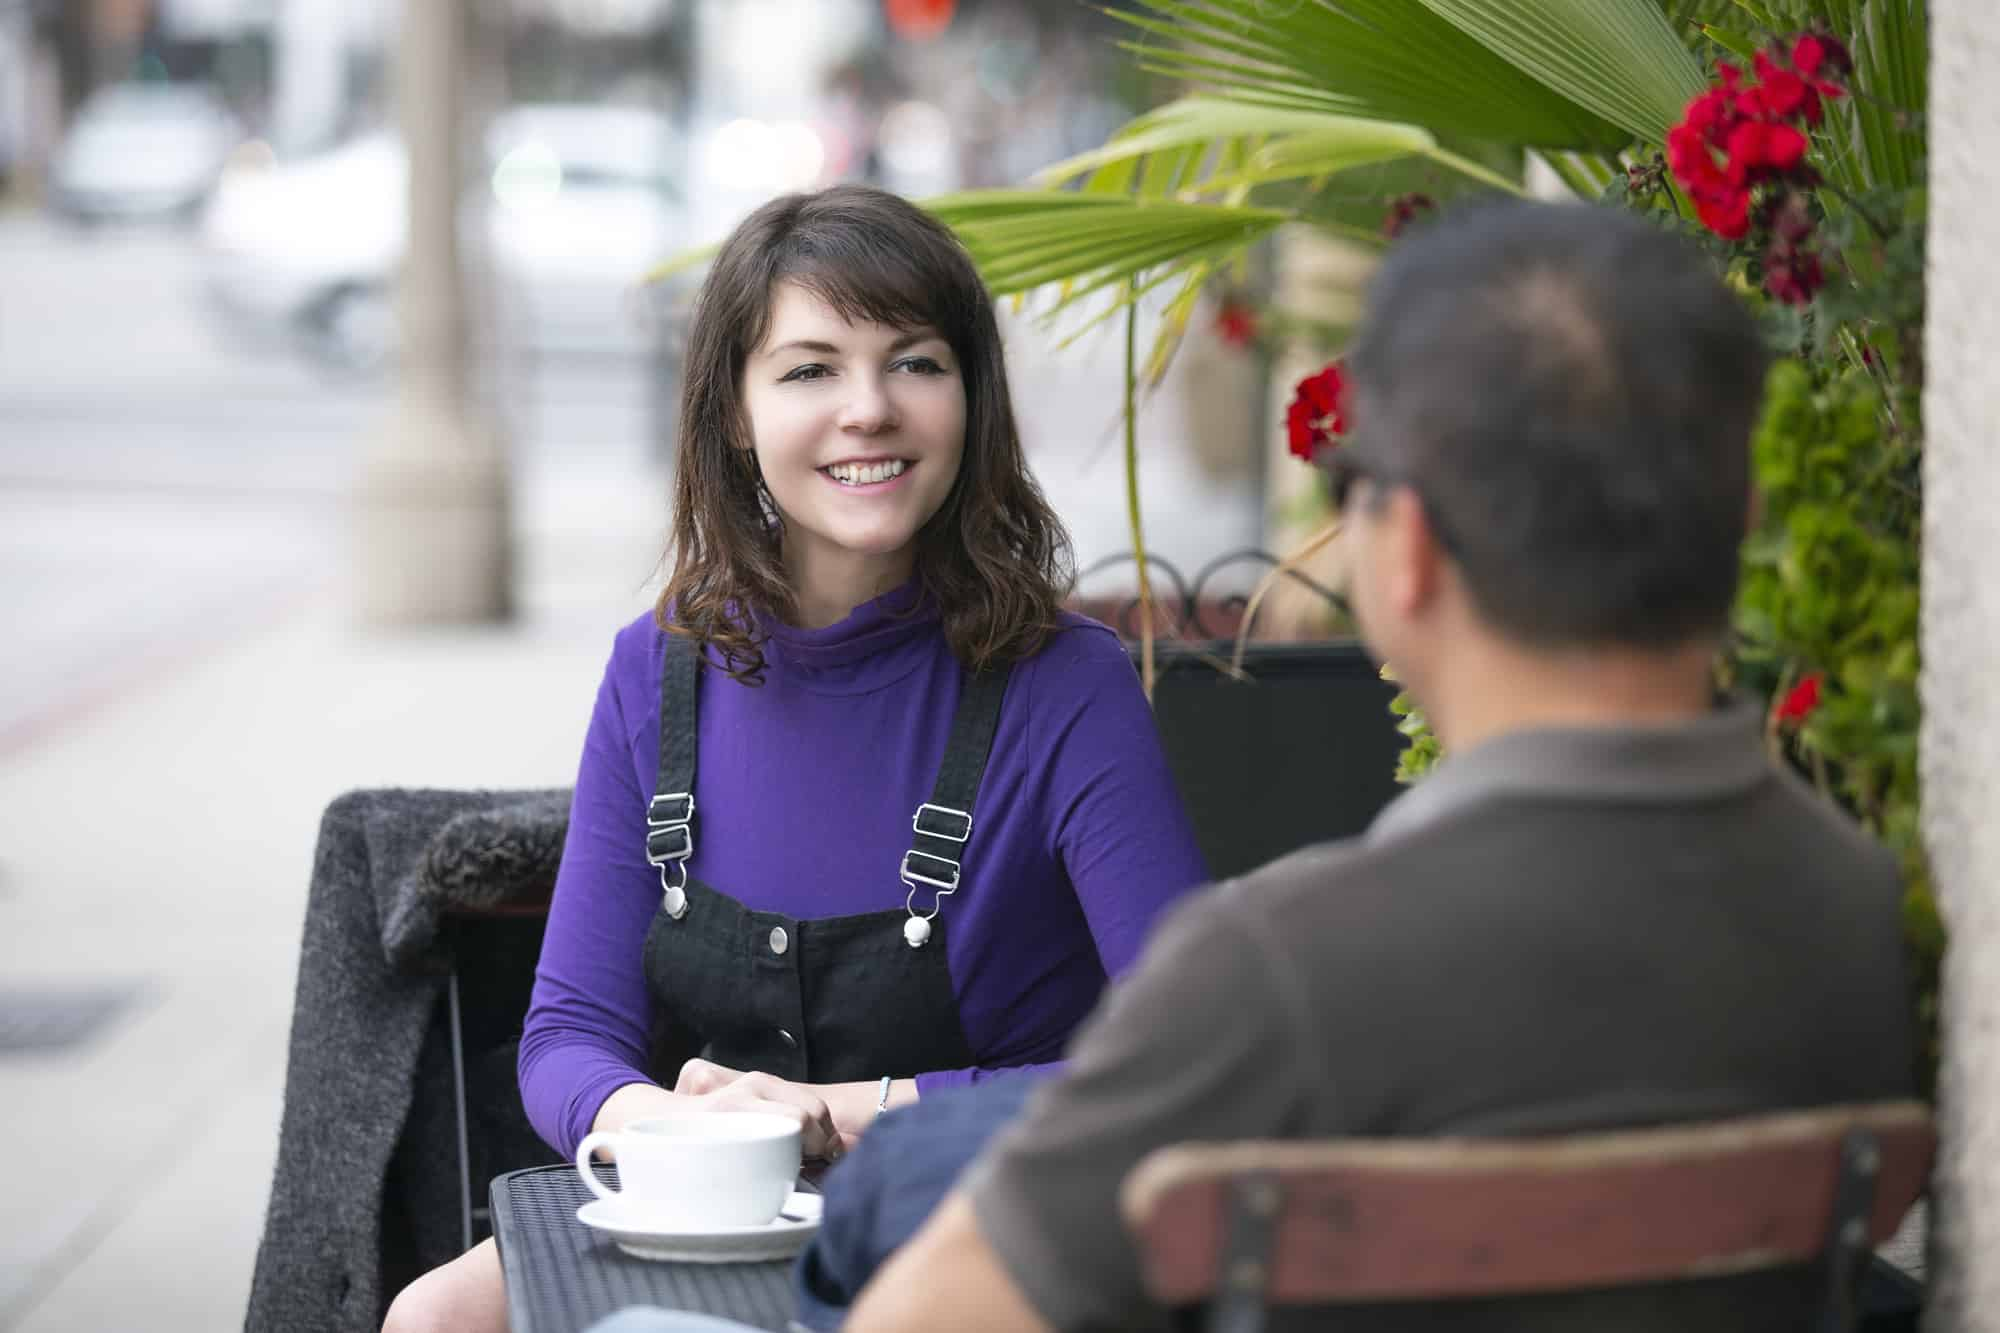 woman talking to a man at a cafe table